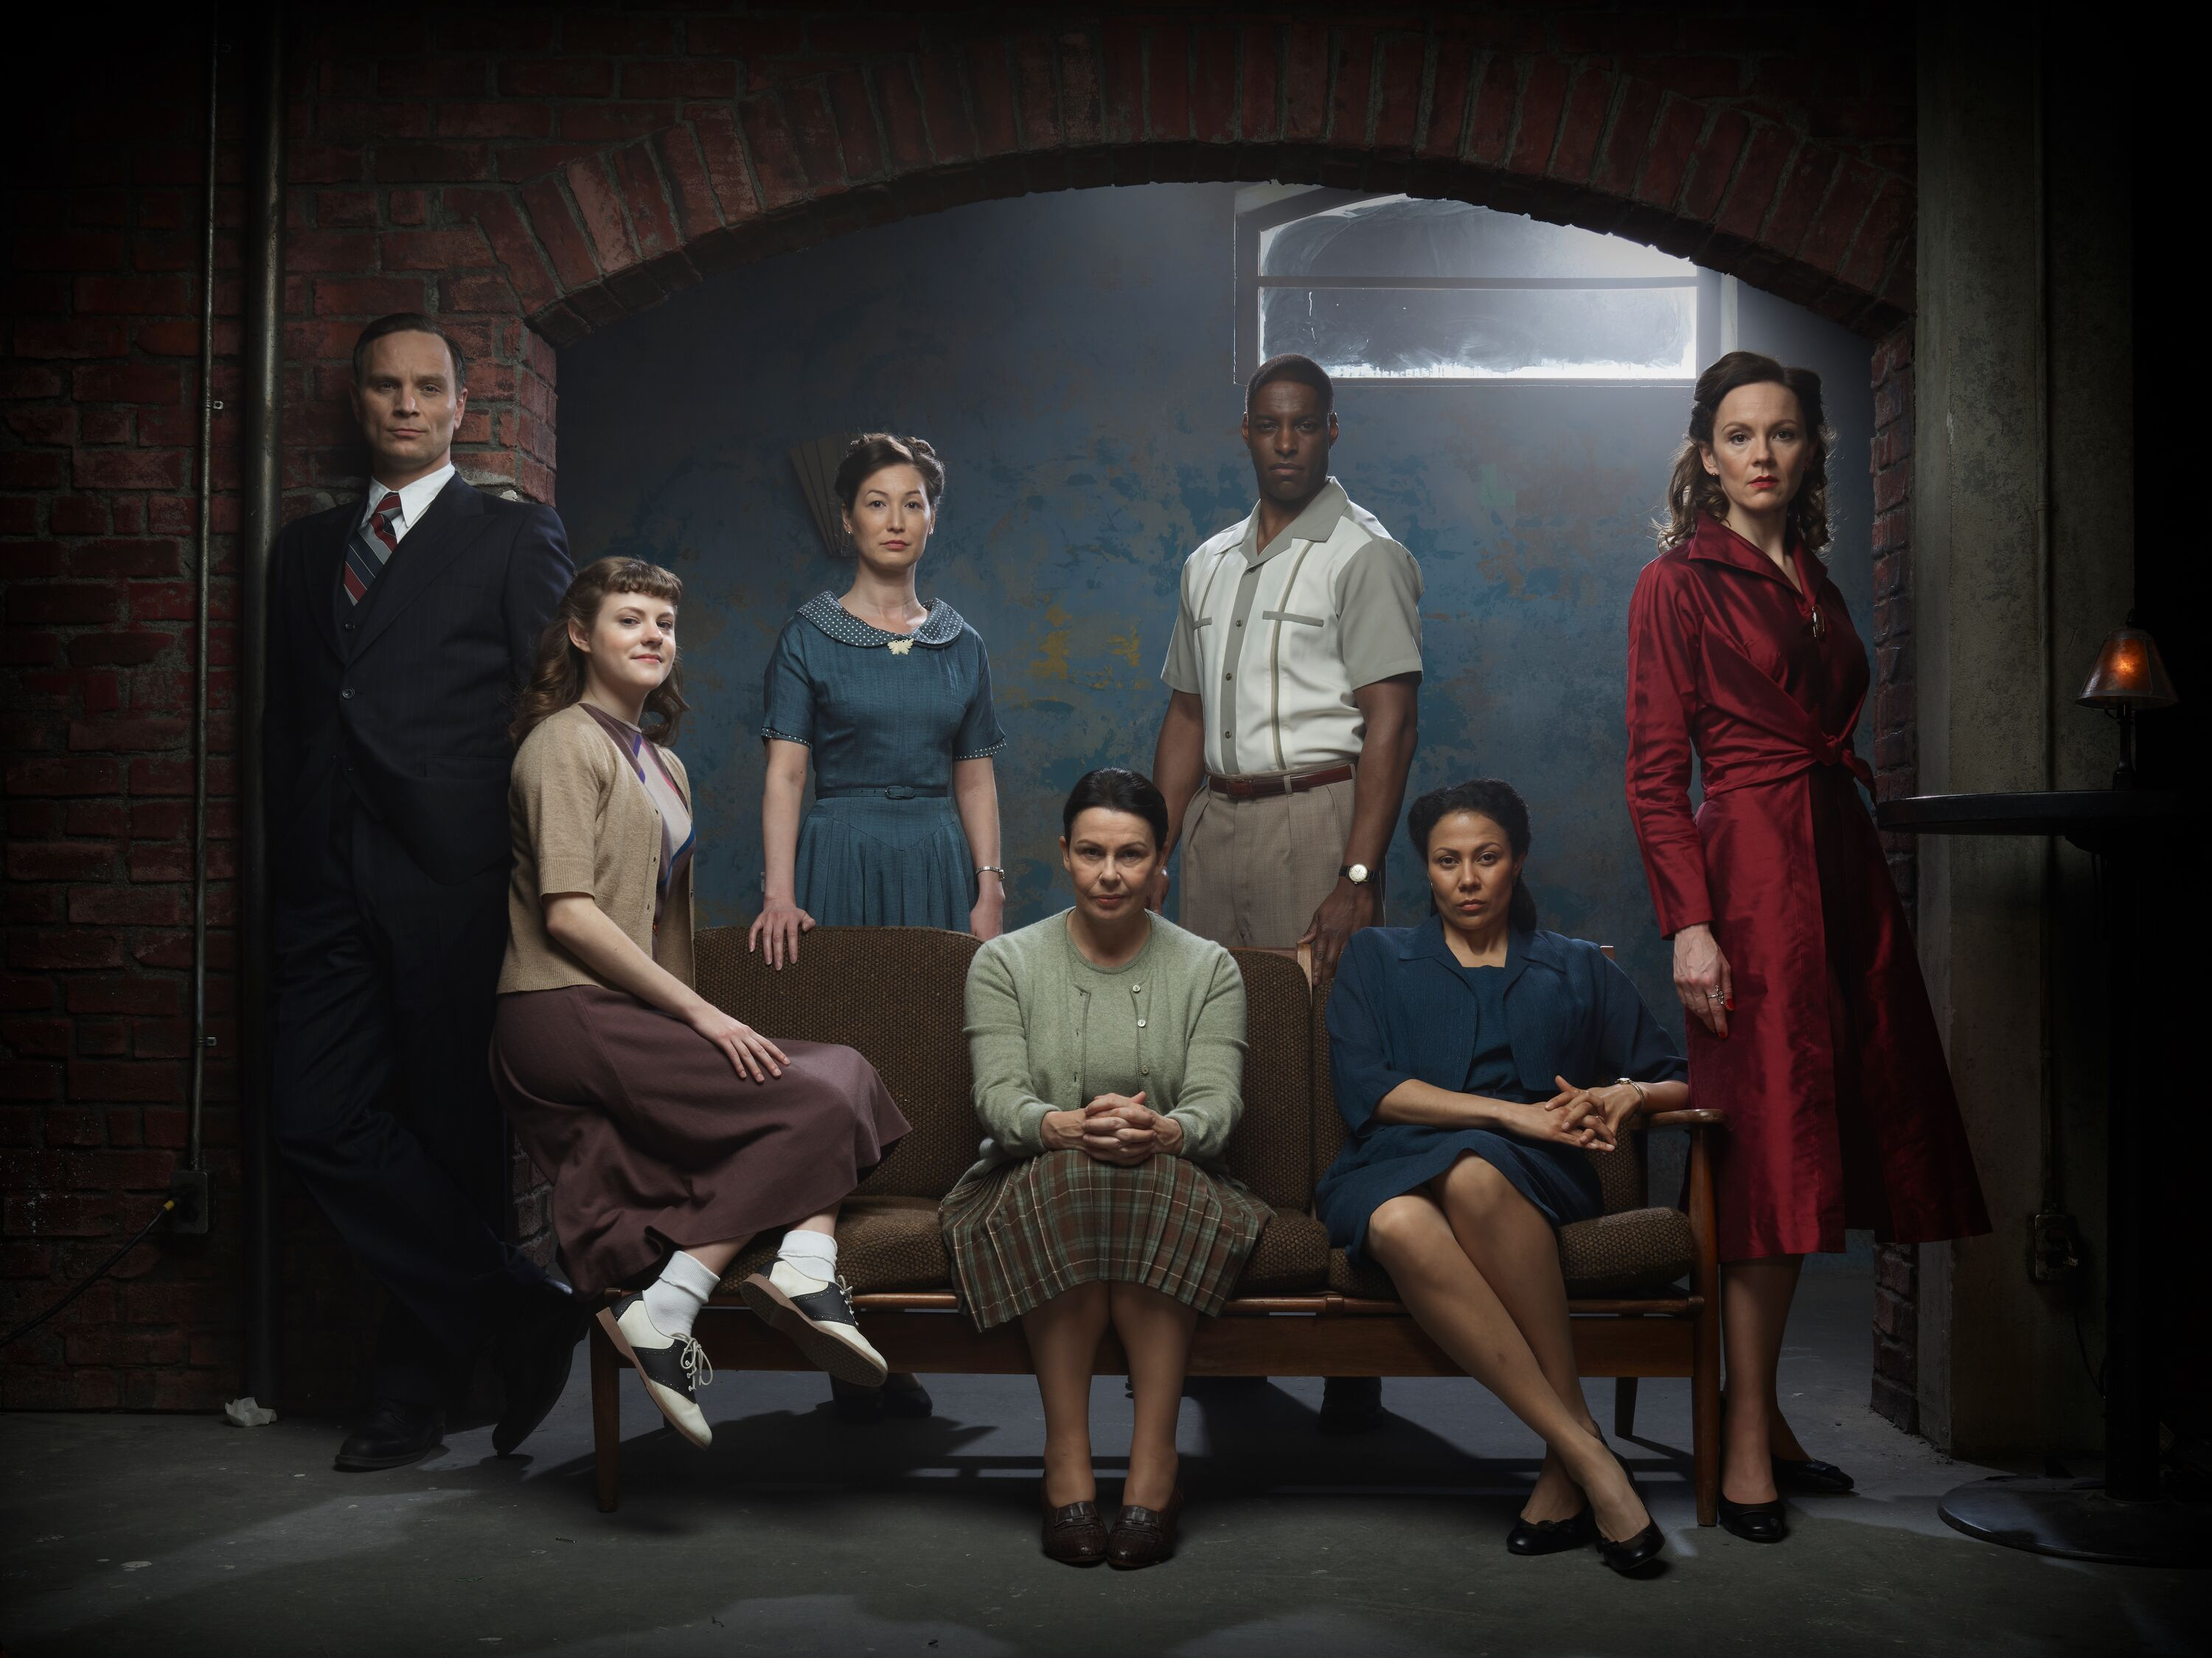 BritBox in July 2018 sees the first service original drop